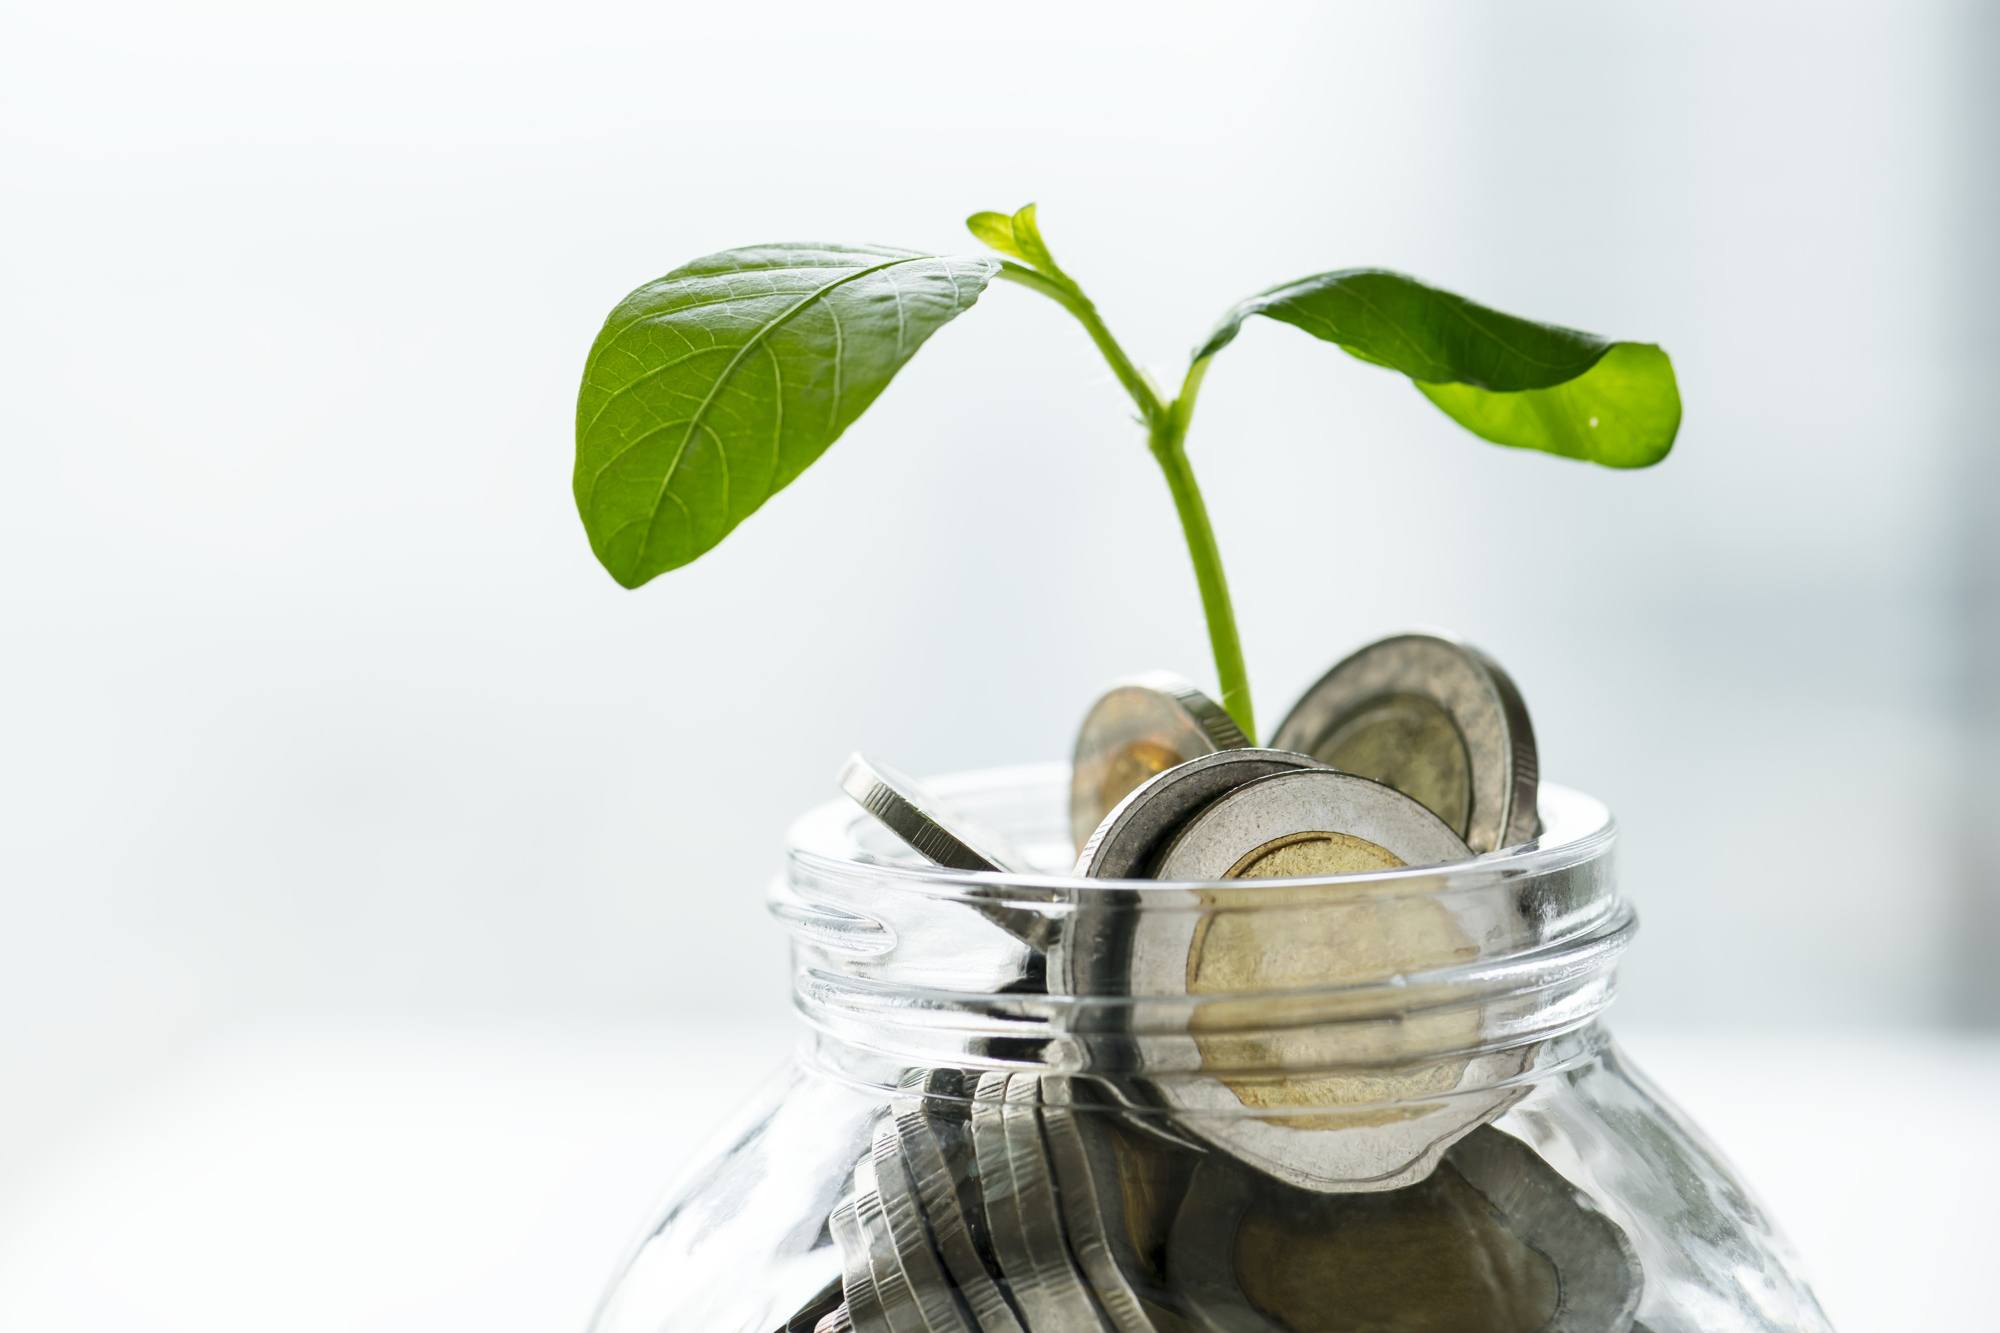 Jar of coins with plant life growing, showing home equity growth.